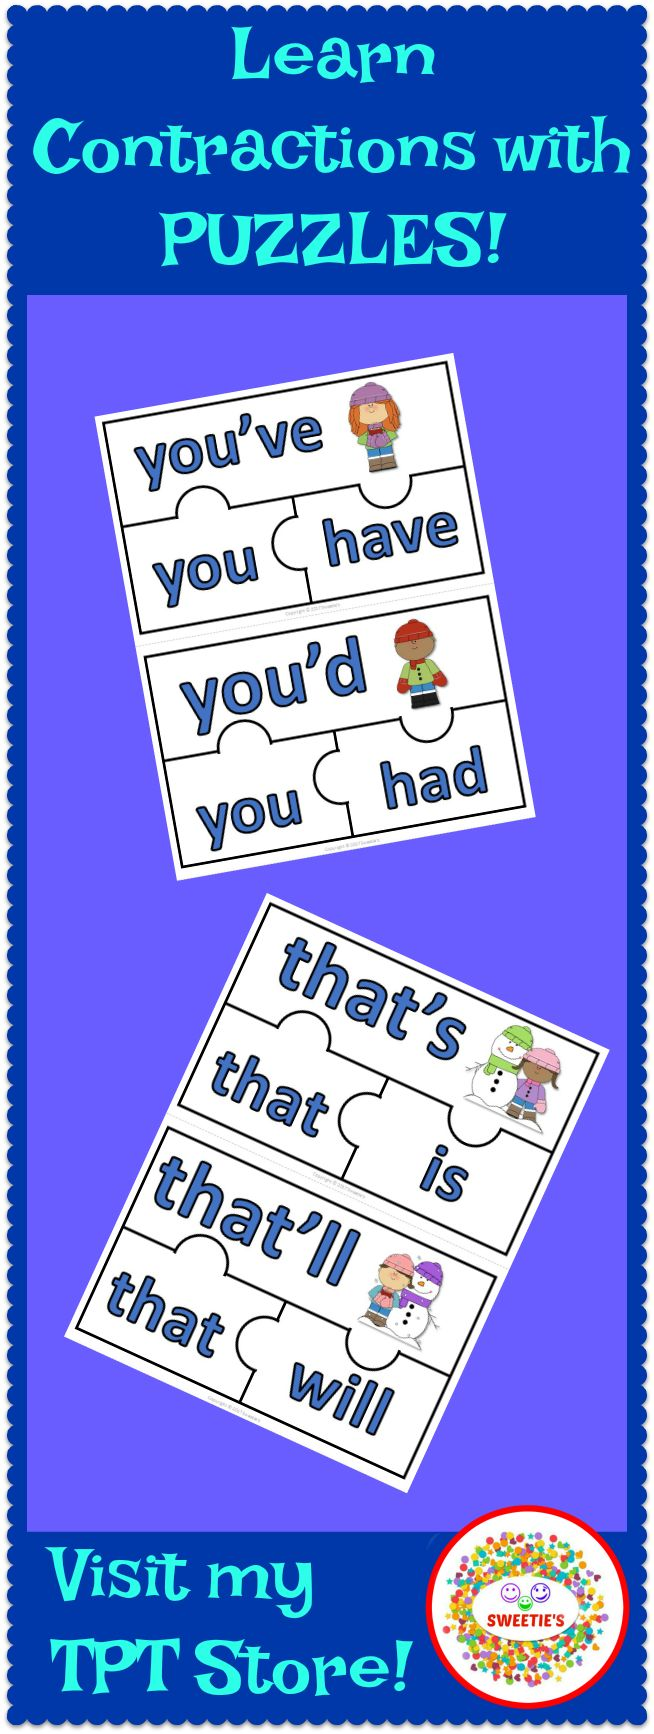 Learn contractions with 45 puzzles!  What a great way to learn how to put the two words into one!  Great for early finishers or a literacy center.  Students will match the three sections of each puzzle. - Contraction - Pronoun - Verb  Pronouns – I, you, he, she, it, we, they, that, who Verbs – forms of be, will, would, have, had  #teacherspayteachers #learnenglish